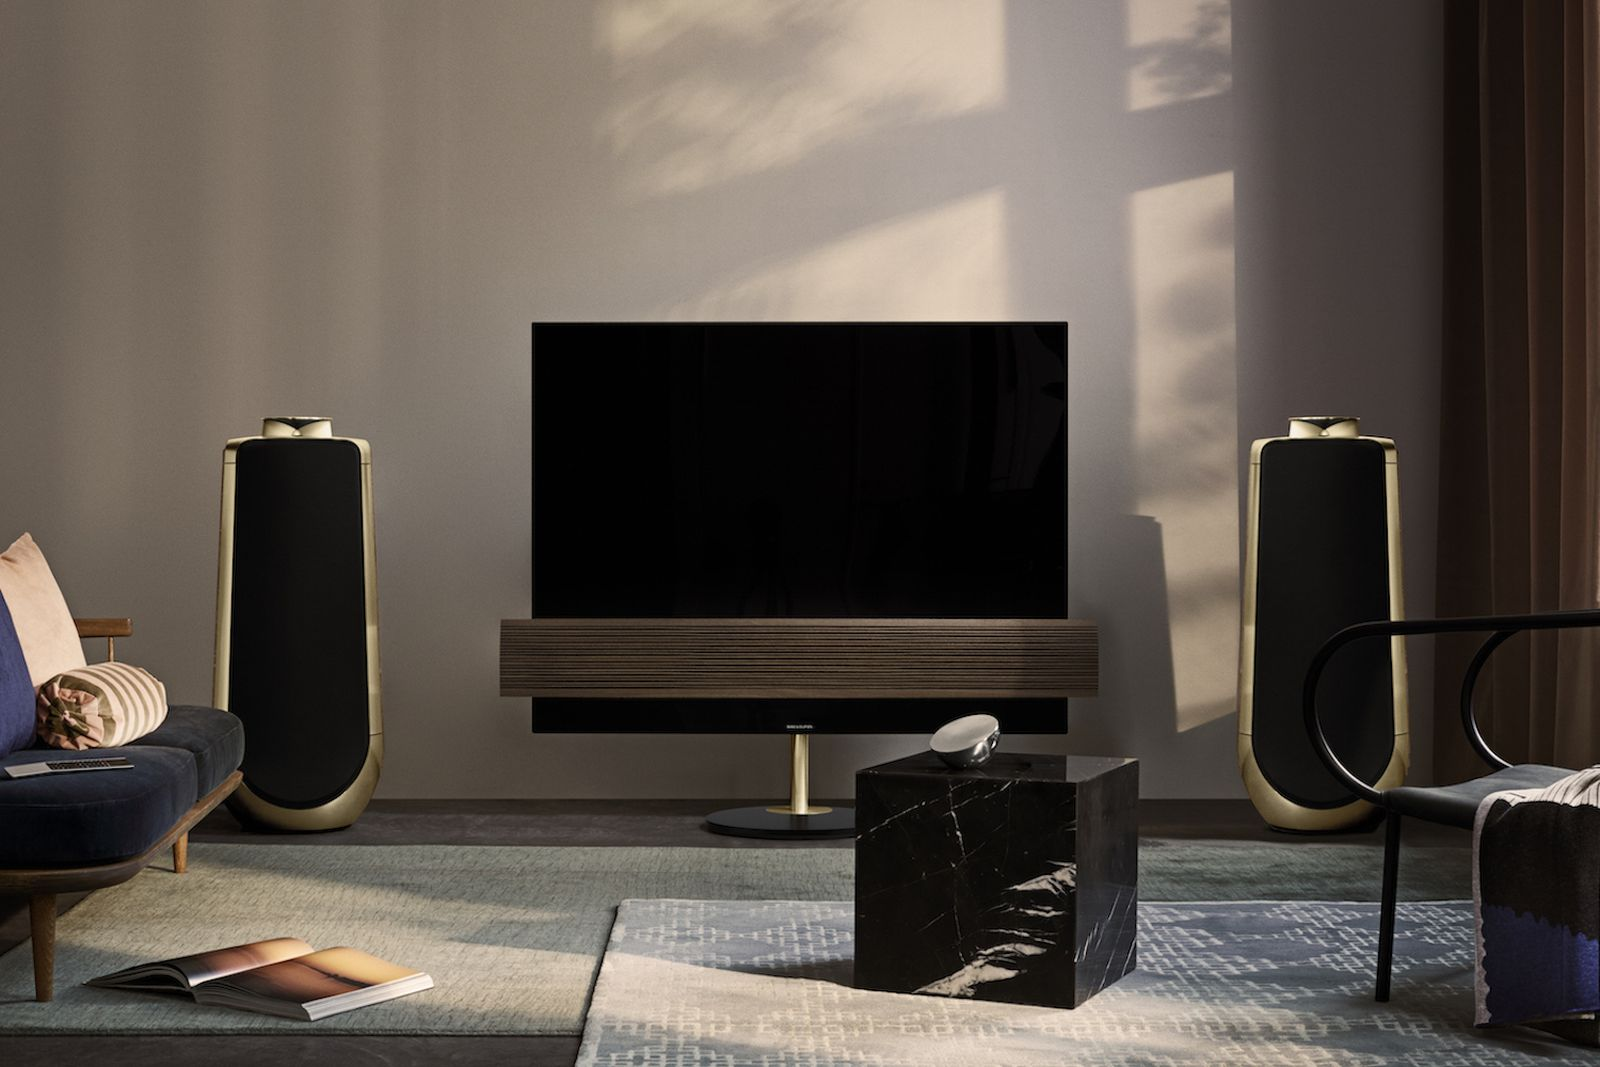 bang-olufsen-beovision-eclipse-and-beolab-50-new-colorway-01